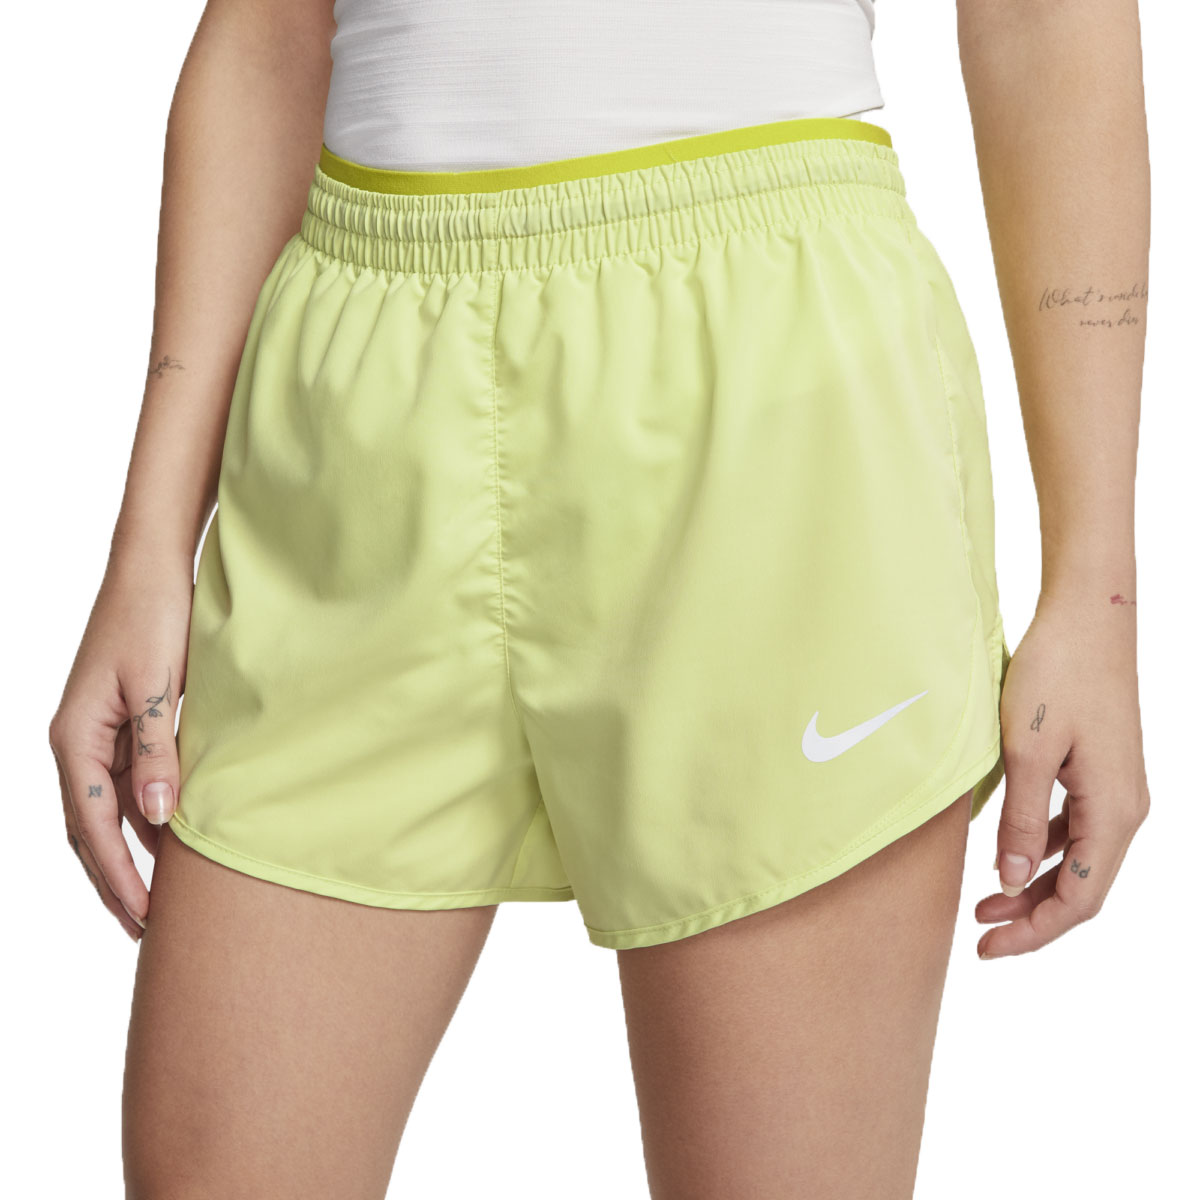 Women's Nike Tempo Luxe 3 Inch Short - Color: Limelight - Size: S, Limelight, large, image 2